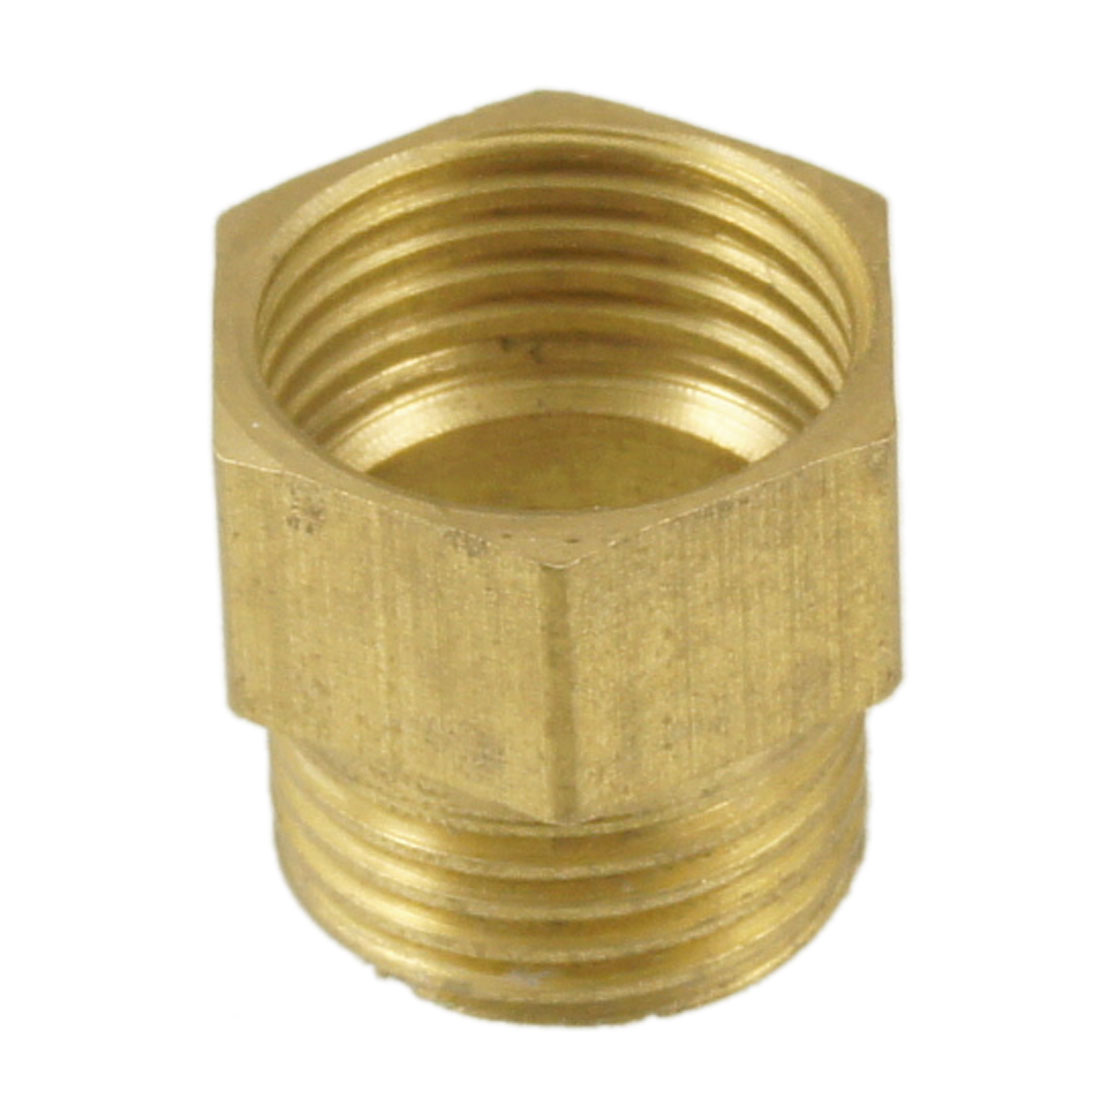 "Pipe Reducer 1/2"" PT Male to 1/2"" PT Brass Hex Thread Bushing Connector"